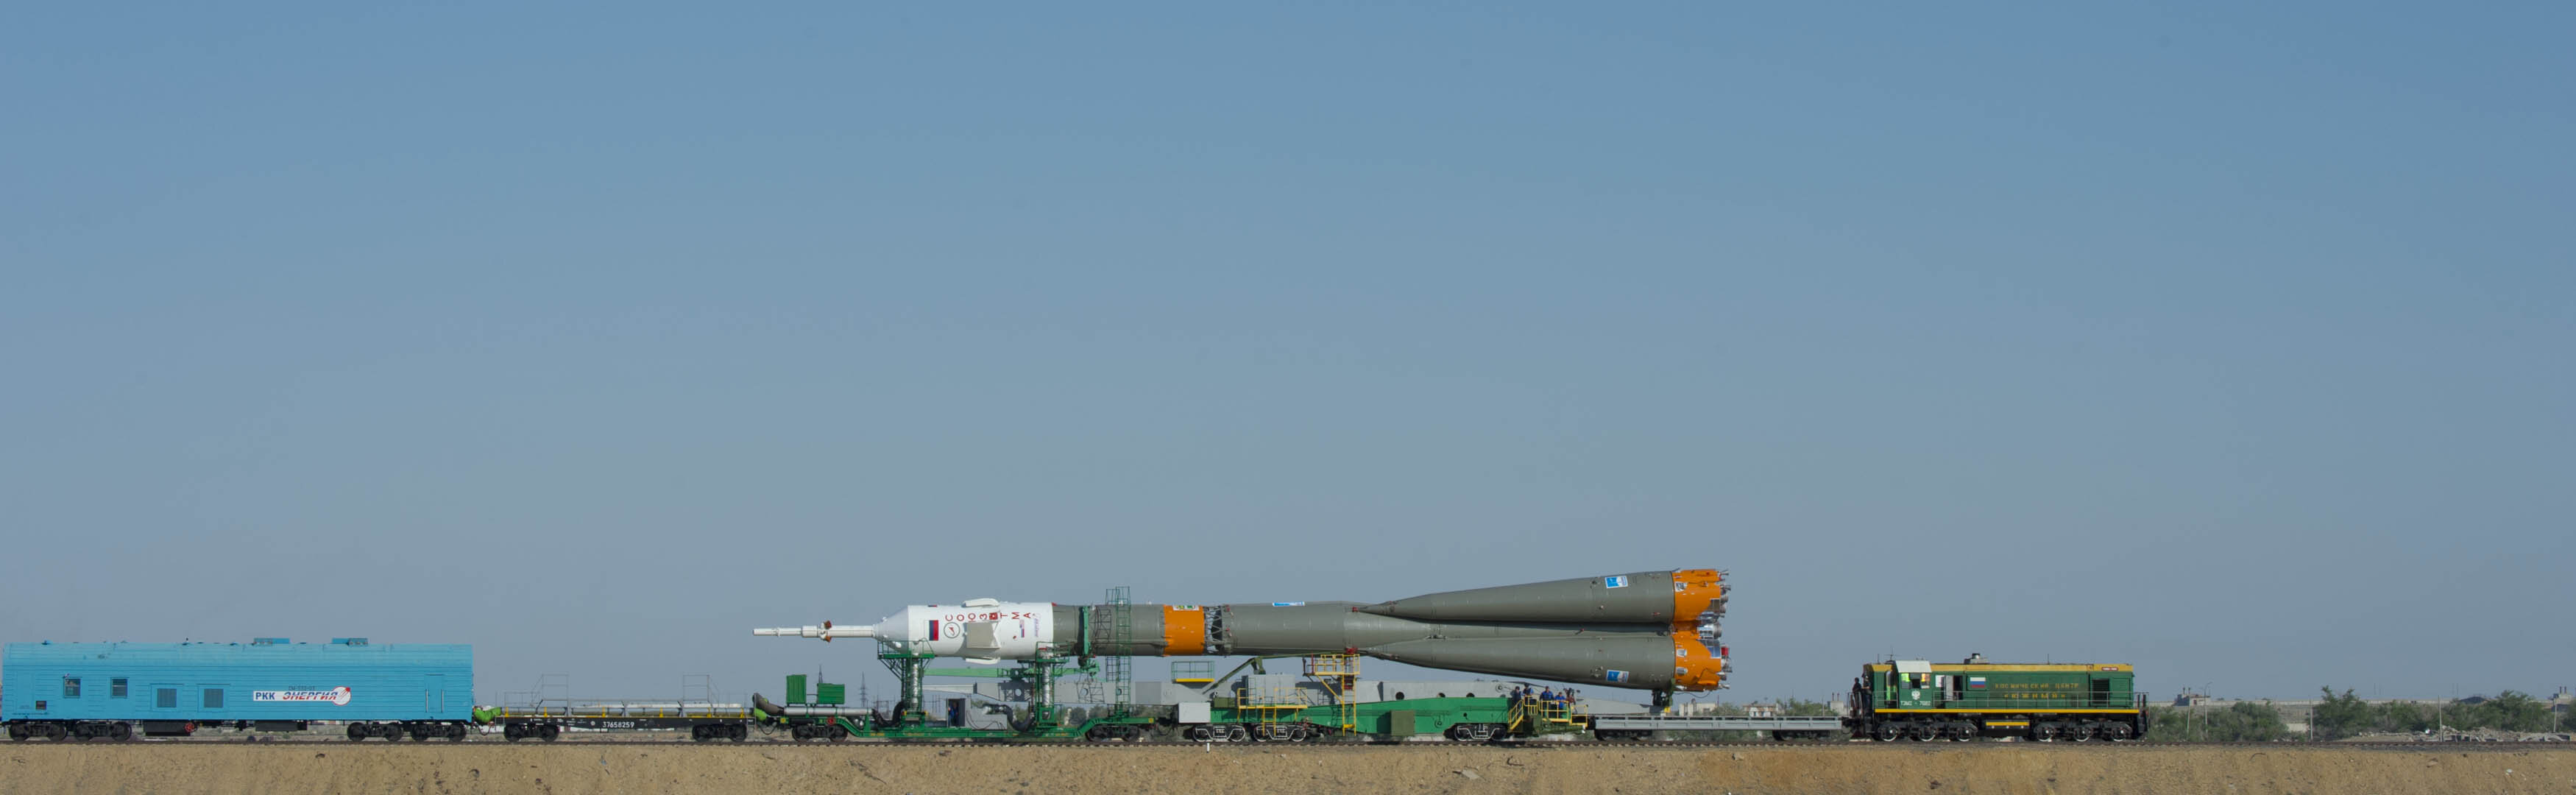 Soyuz moving to launch pad